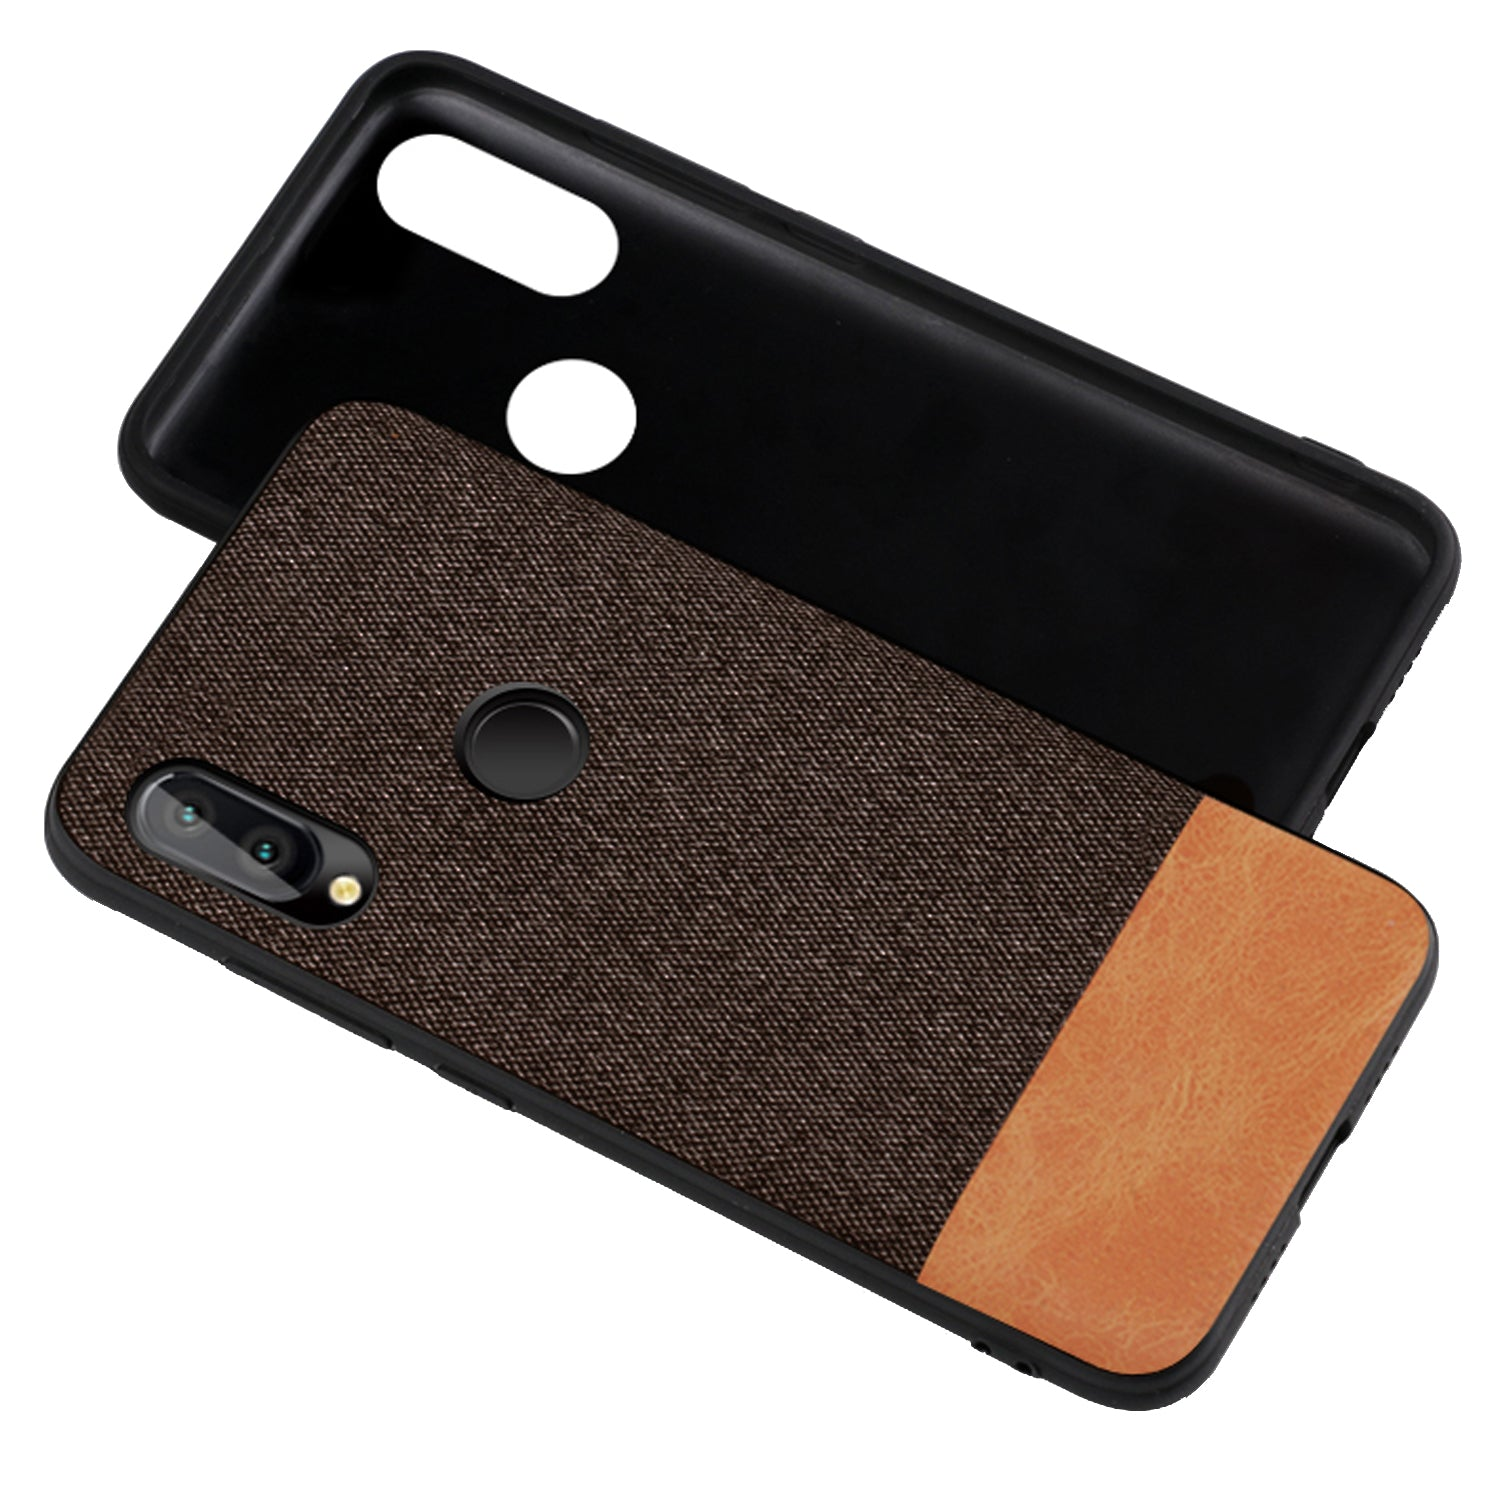 Fabric + Leather Hybrid Protective Case Cover for Huawei P20 LITE - Brown - Mobizang